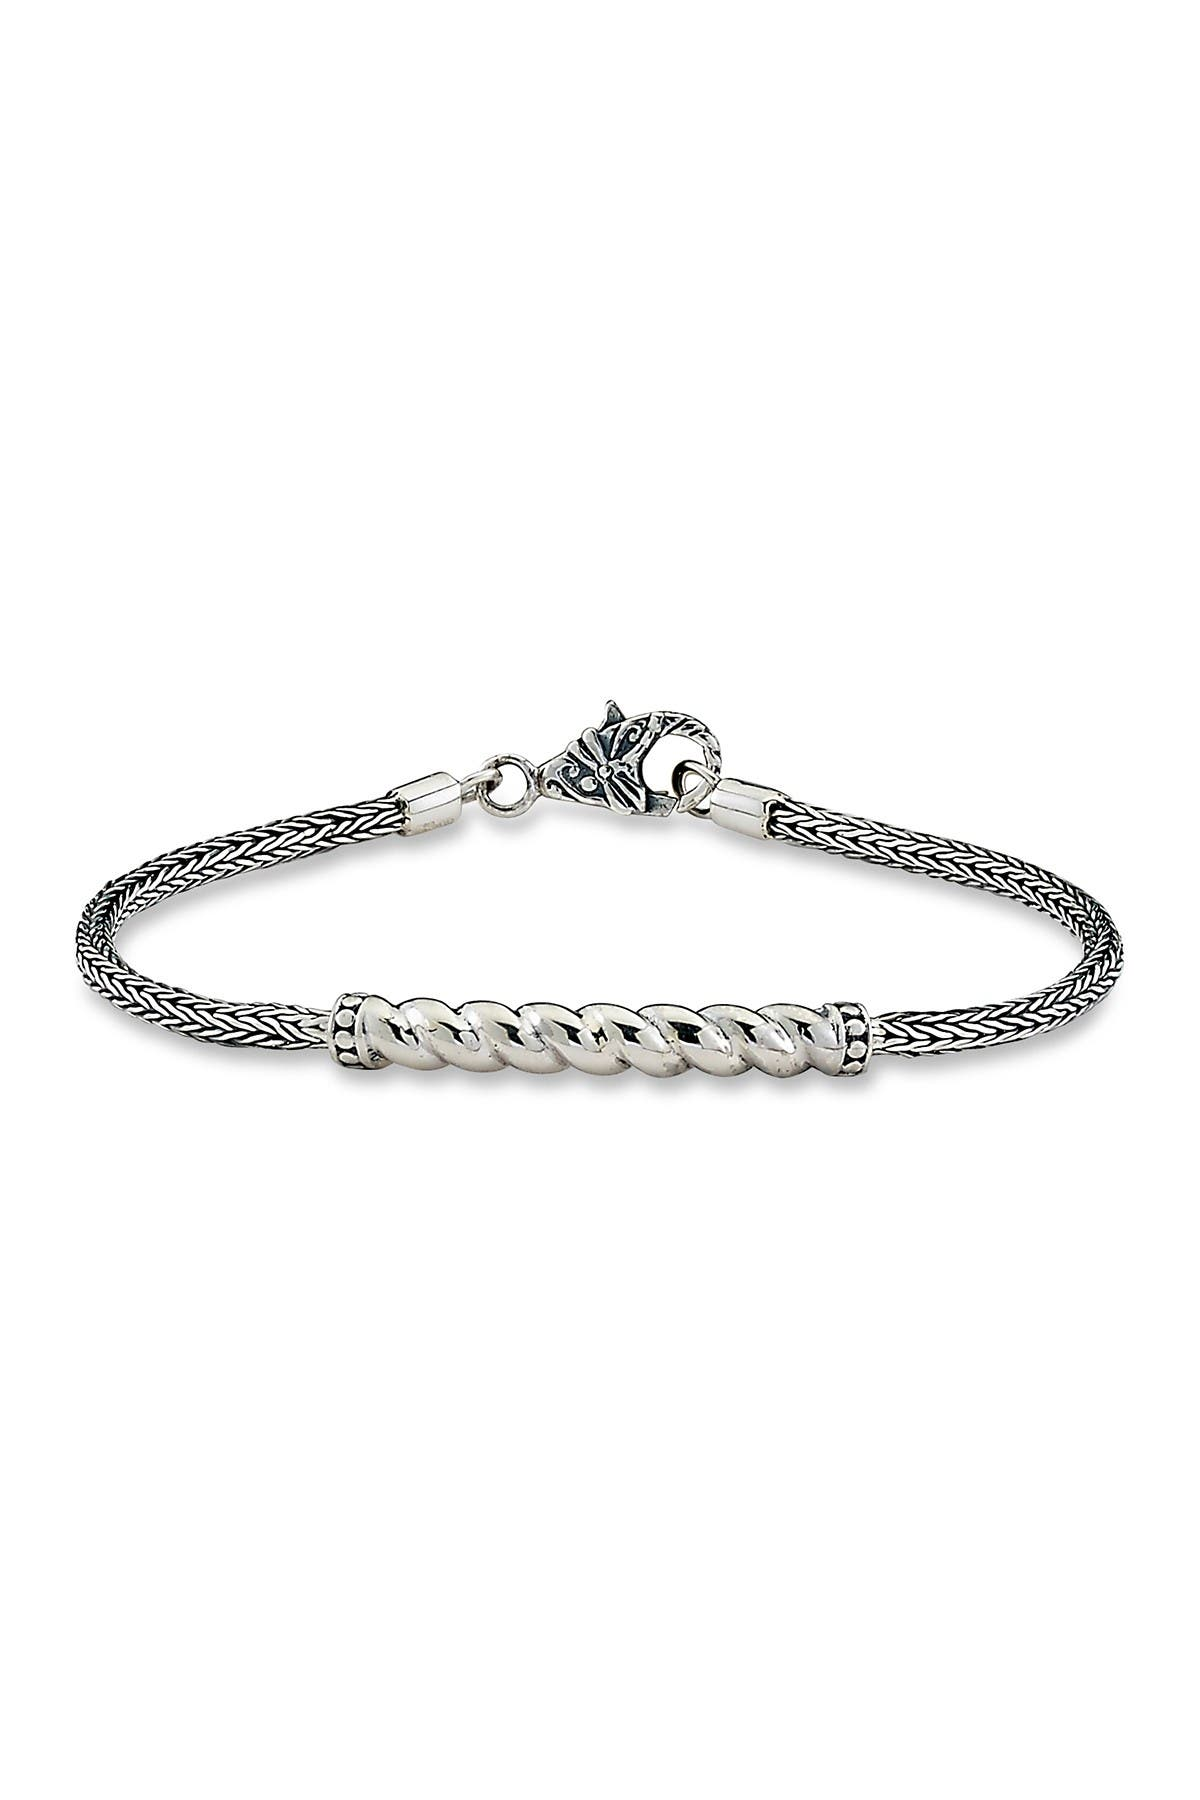 Image of Samuel B Jewelry Sterling Silver 2.5mm Tulang Naga Twisted Cable Design Bar Bracelet